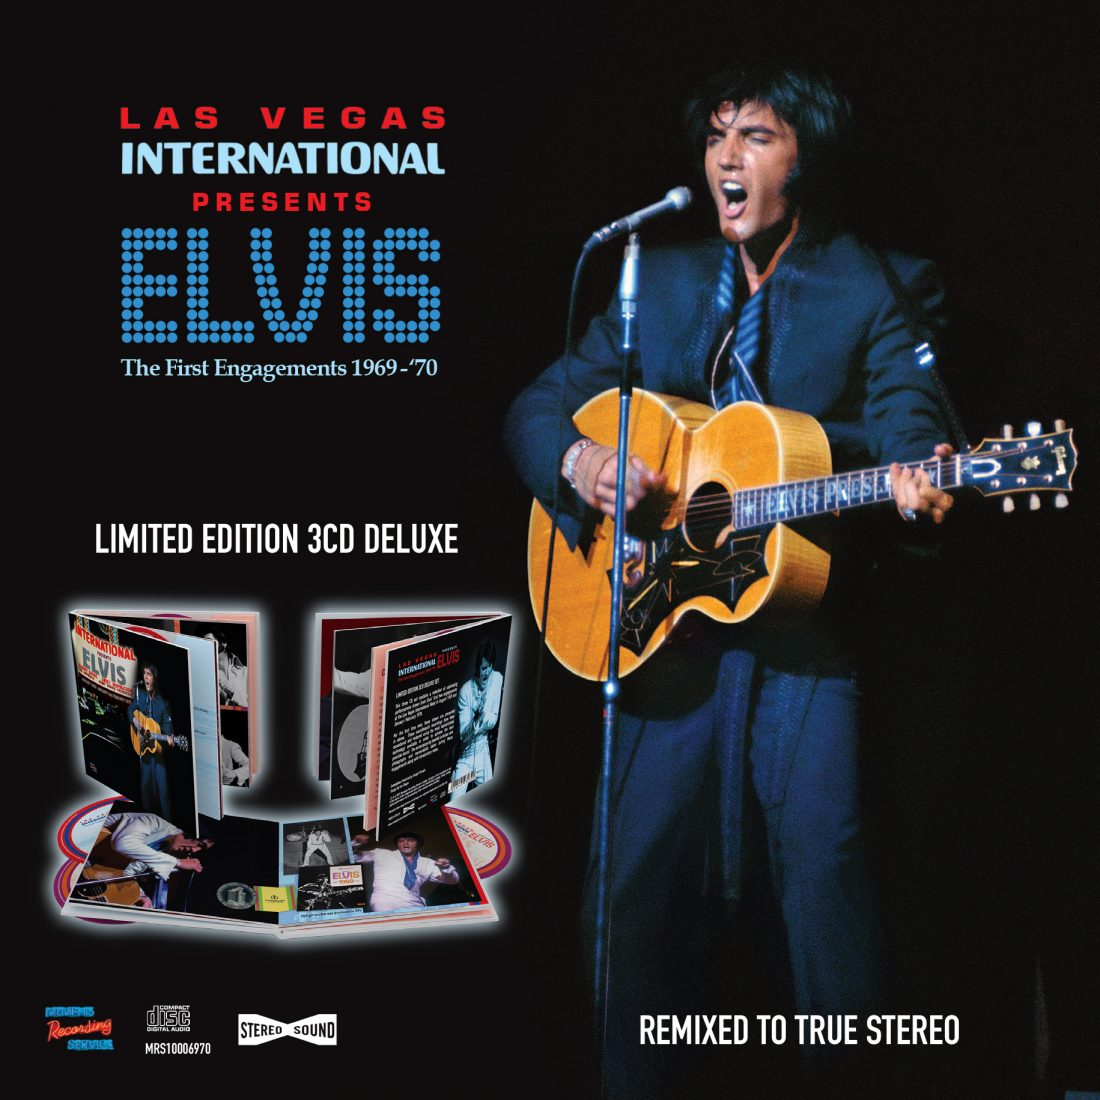 New Elvis live set to be released